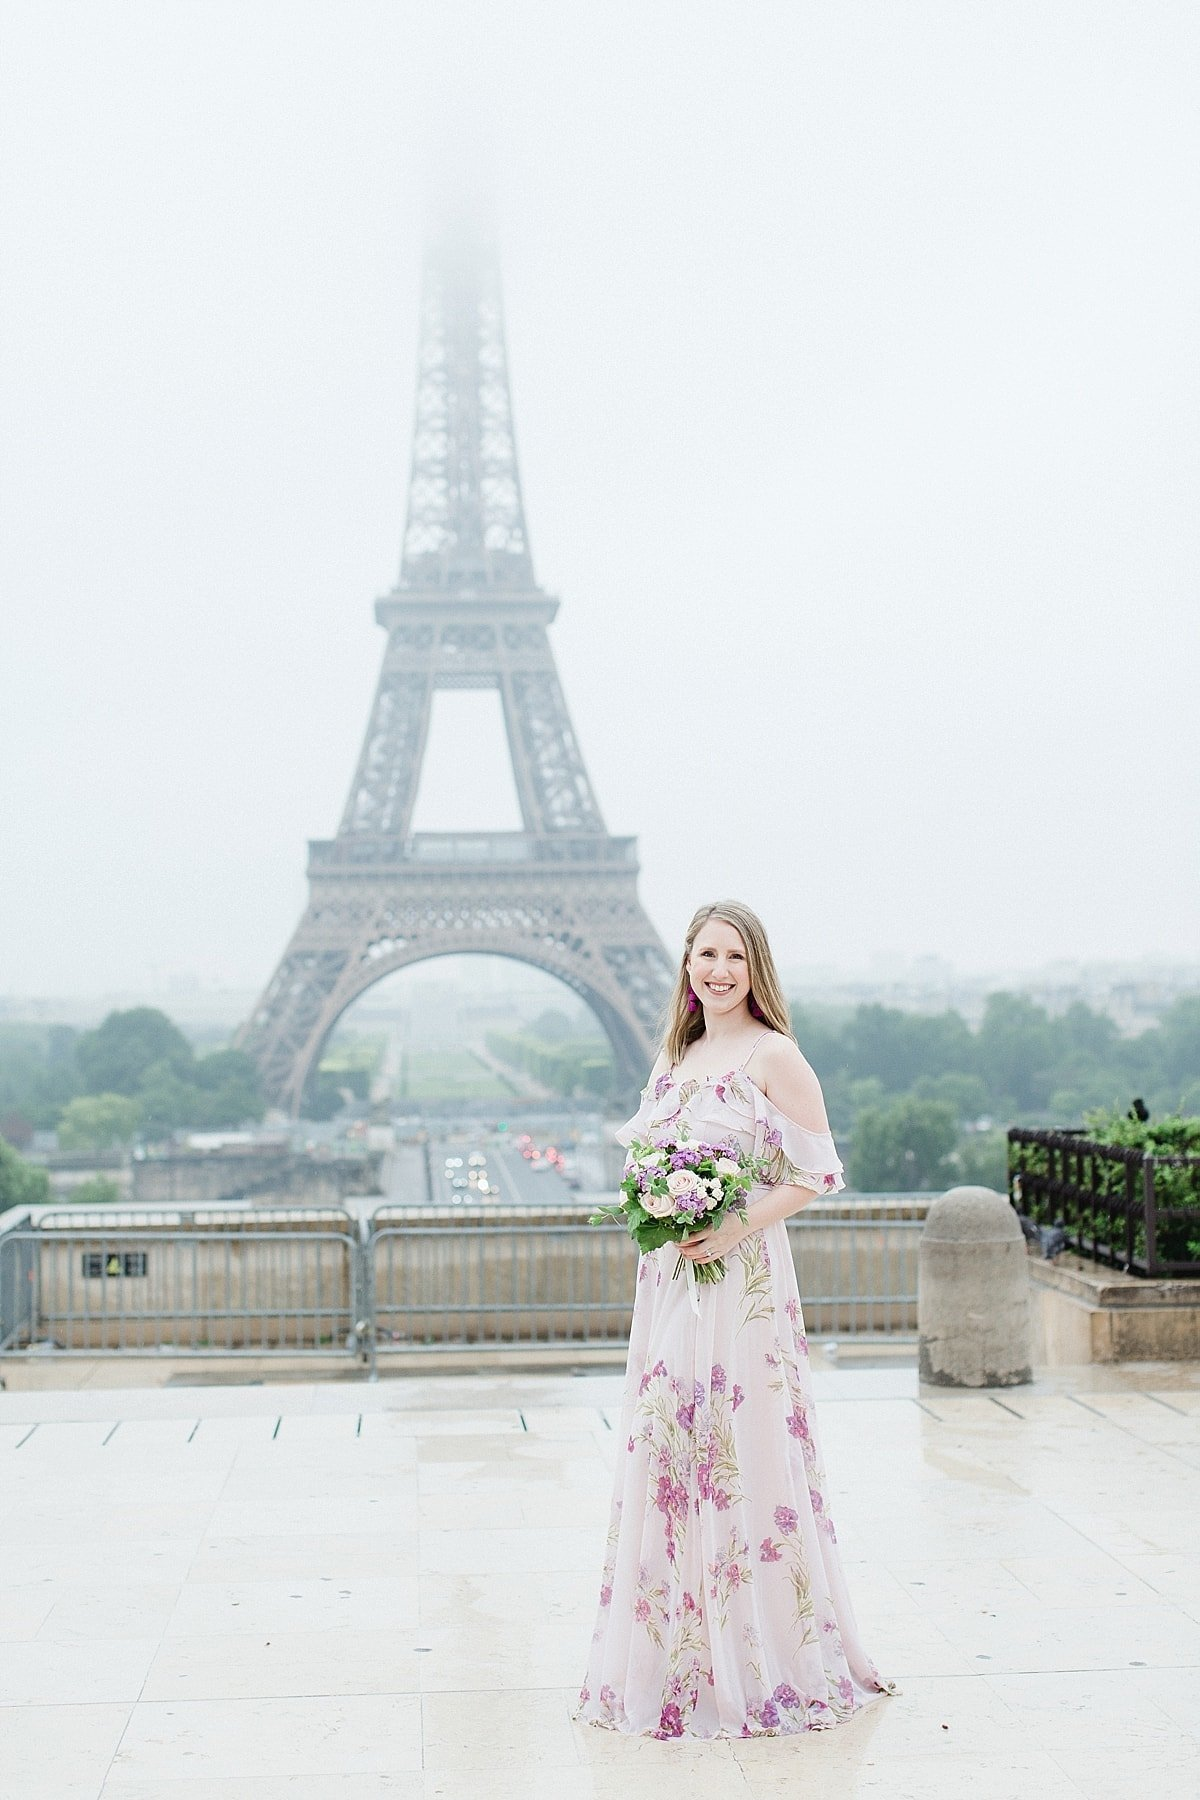 paris-photo-session-anniversary-alicia-yarrish-photography_06